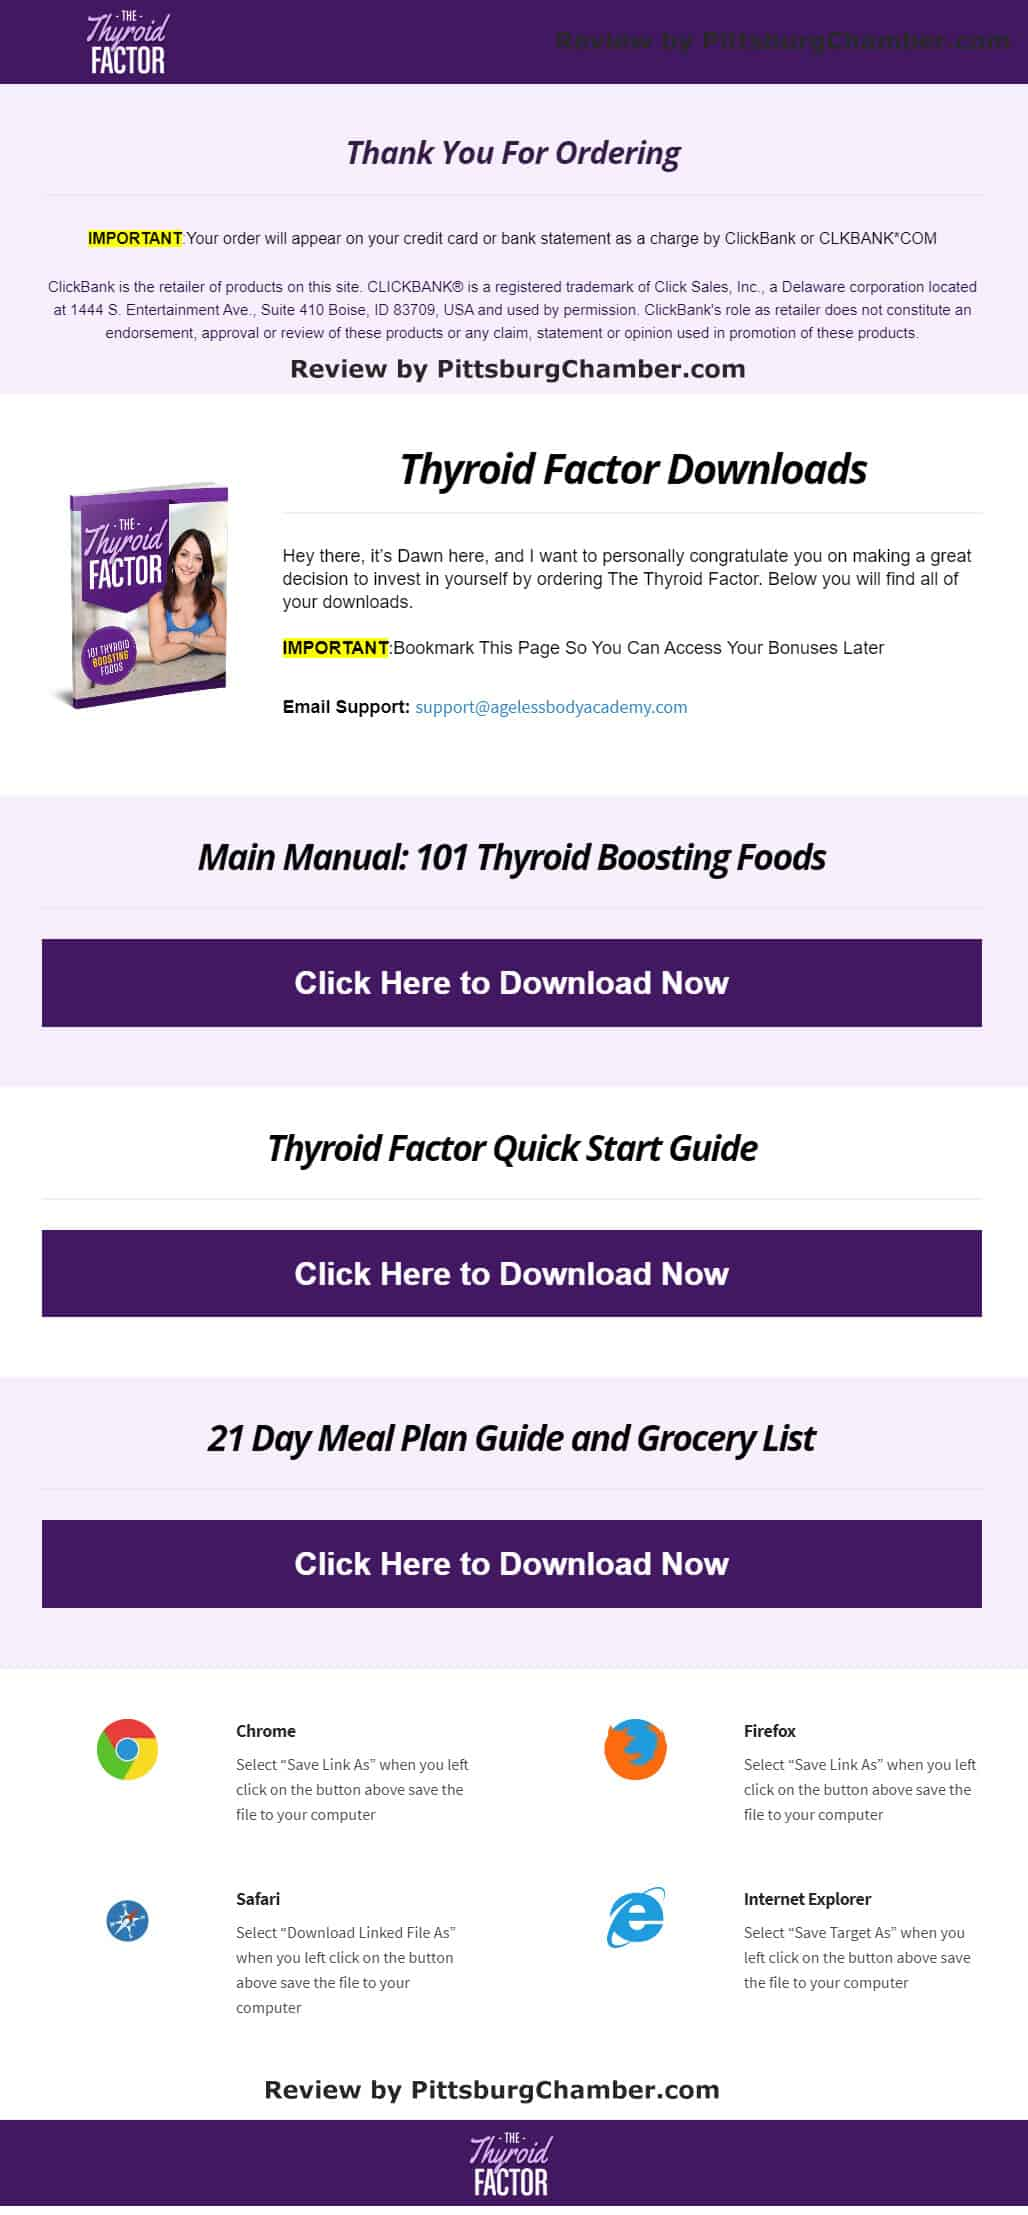 The Thyroid Factor Download Page